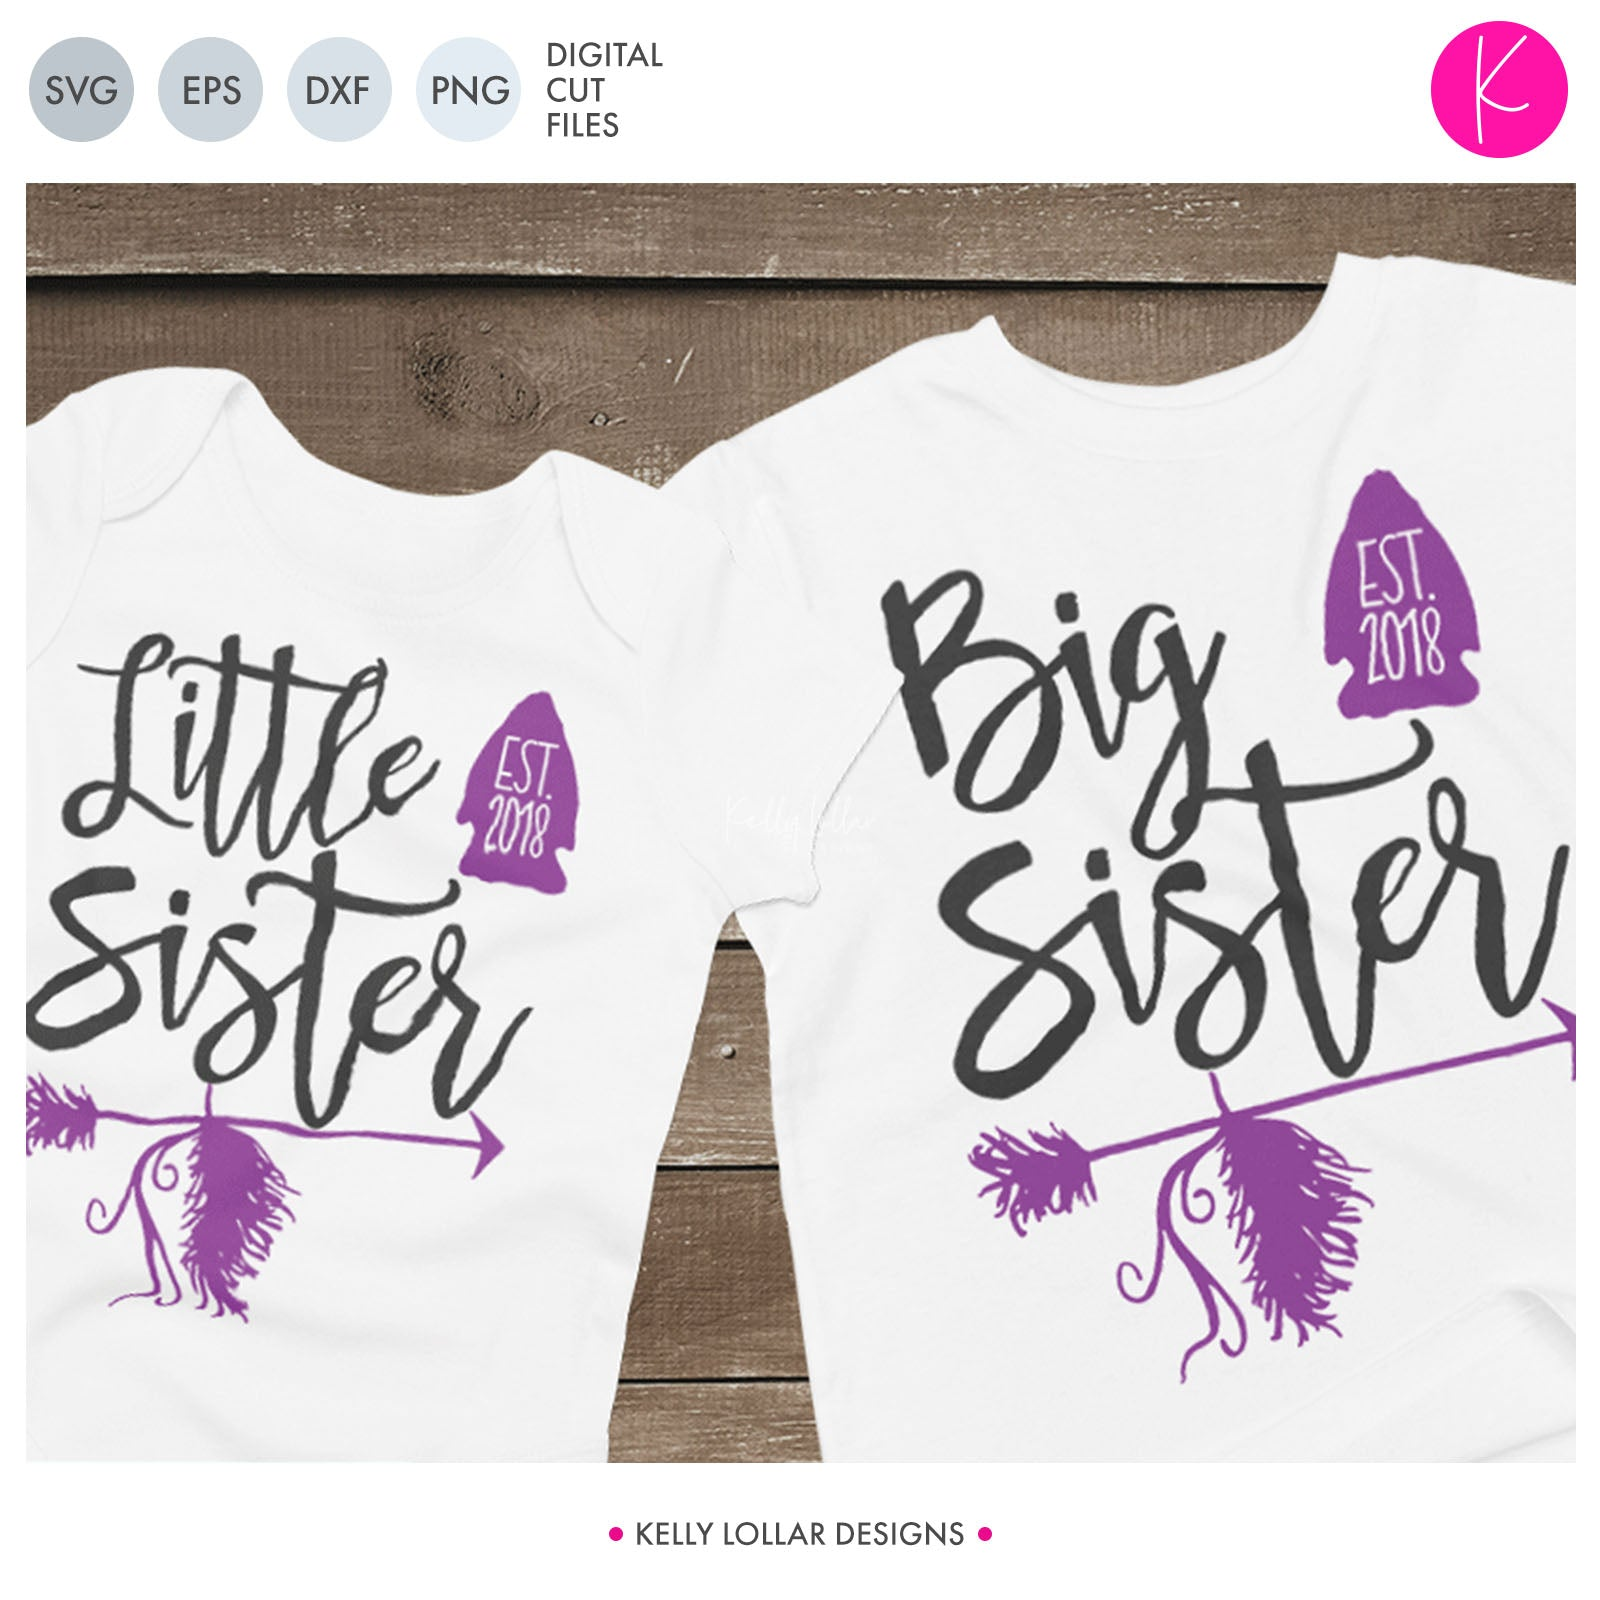 Sisters with Arrows | SVG DXF EPS PNG Cut Files Matching Big and Little Sister Shirt Designs with Arrows and Arrowheads | SVG DXF PNG Cut Files  Set of sibling designs for matching sister shirts with a spot to add the